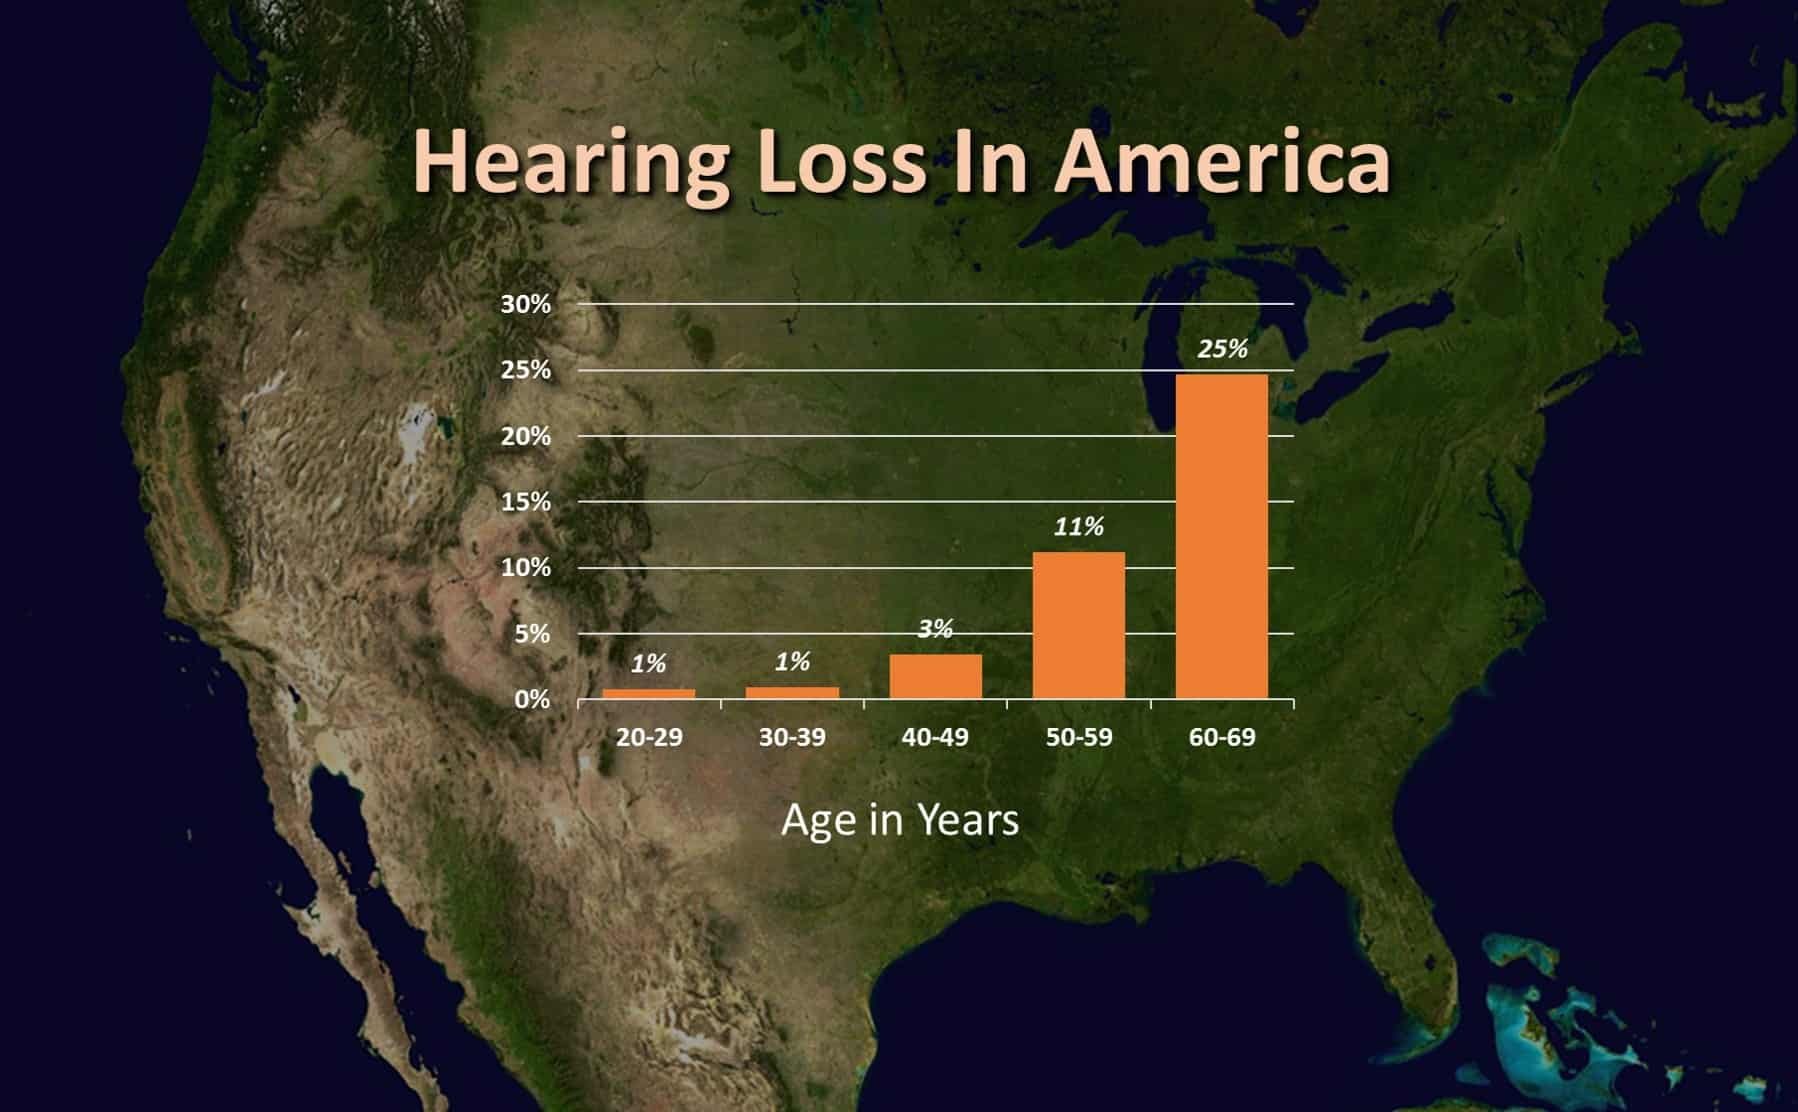 Hearing Loss in America